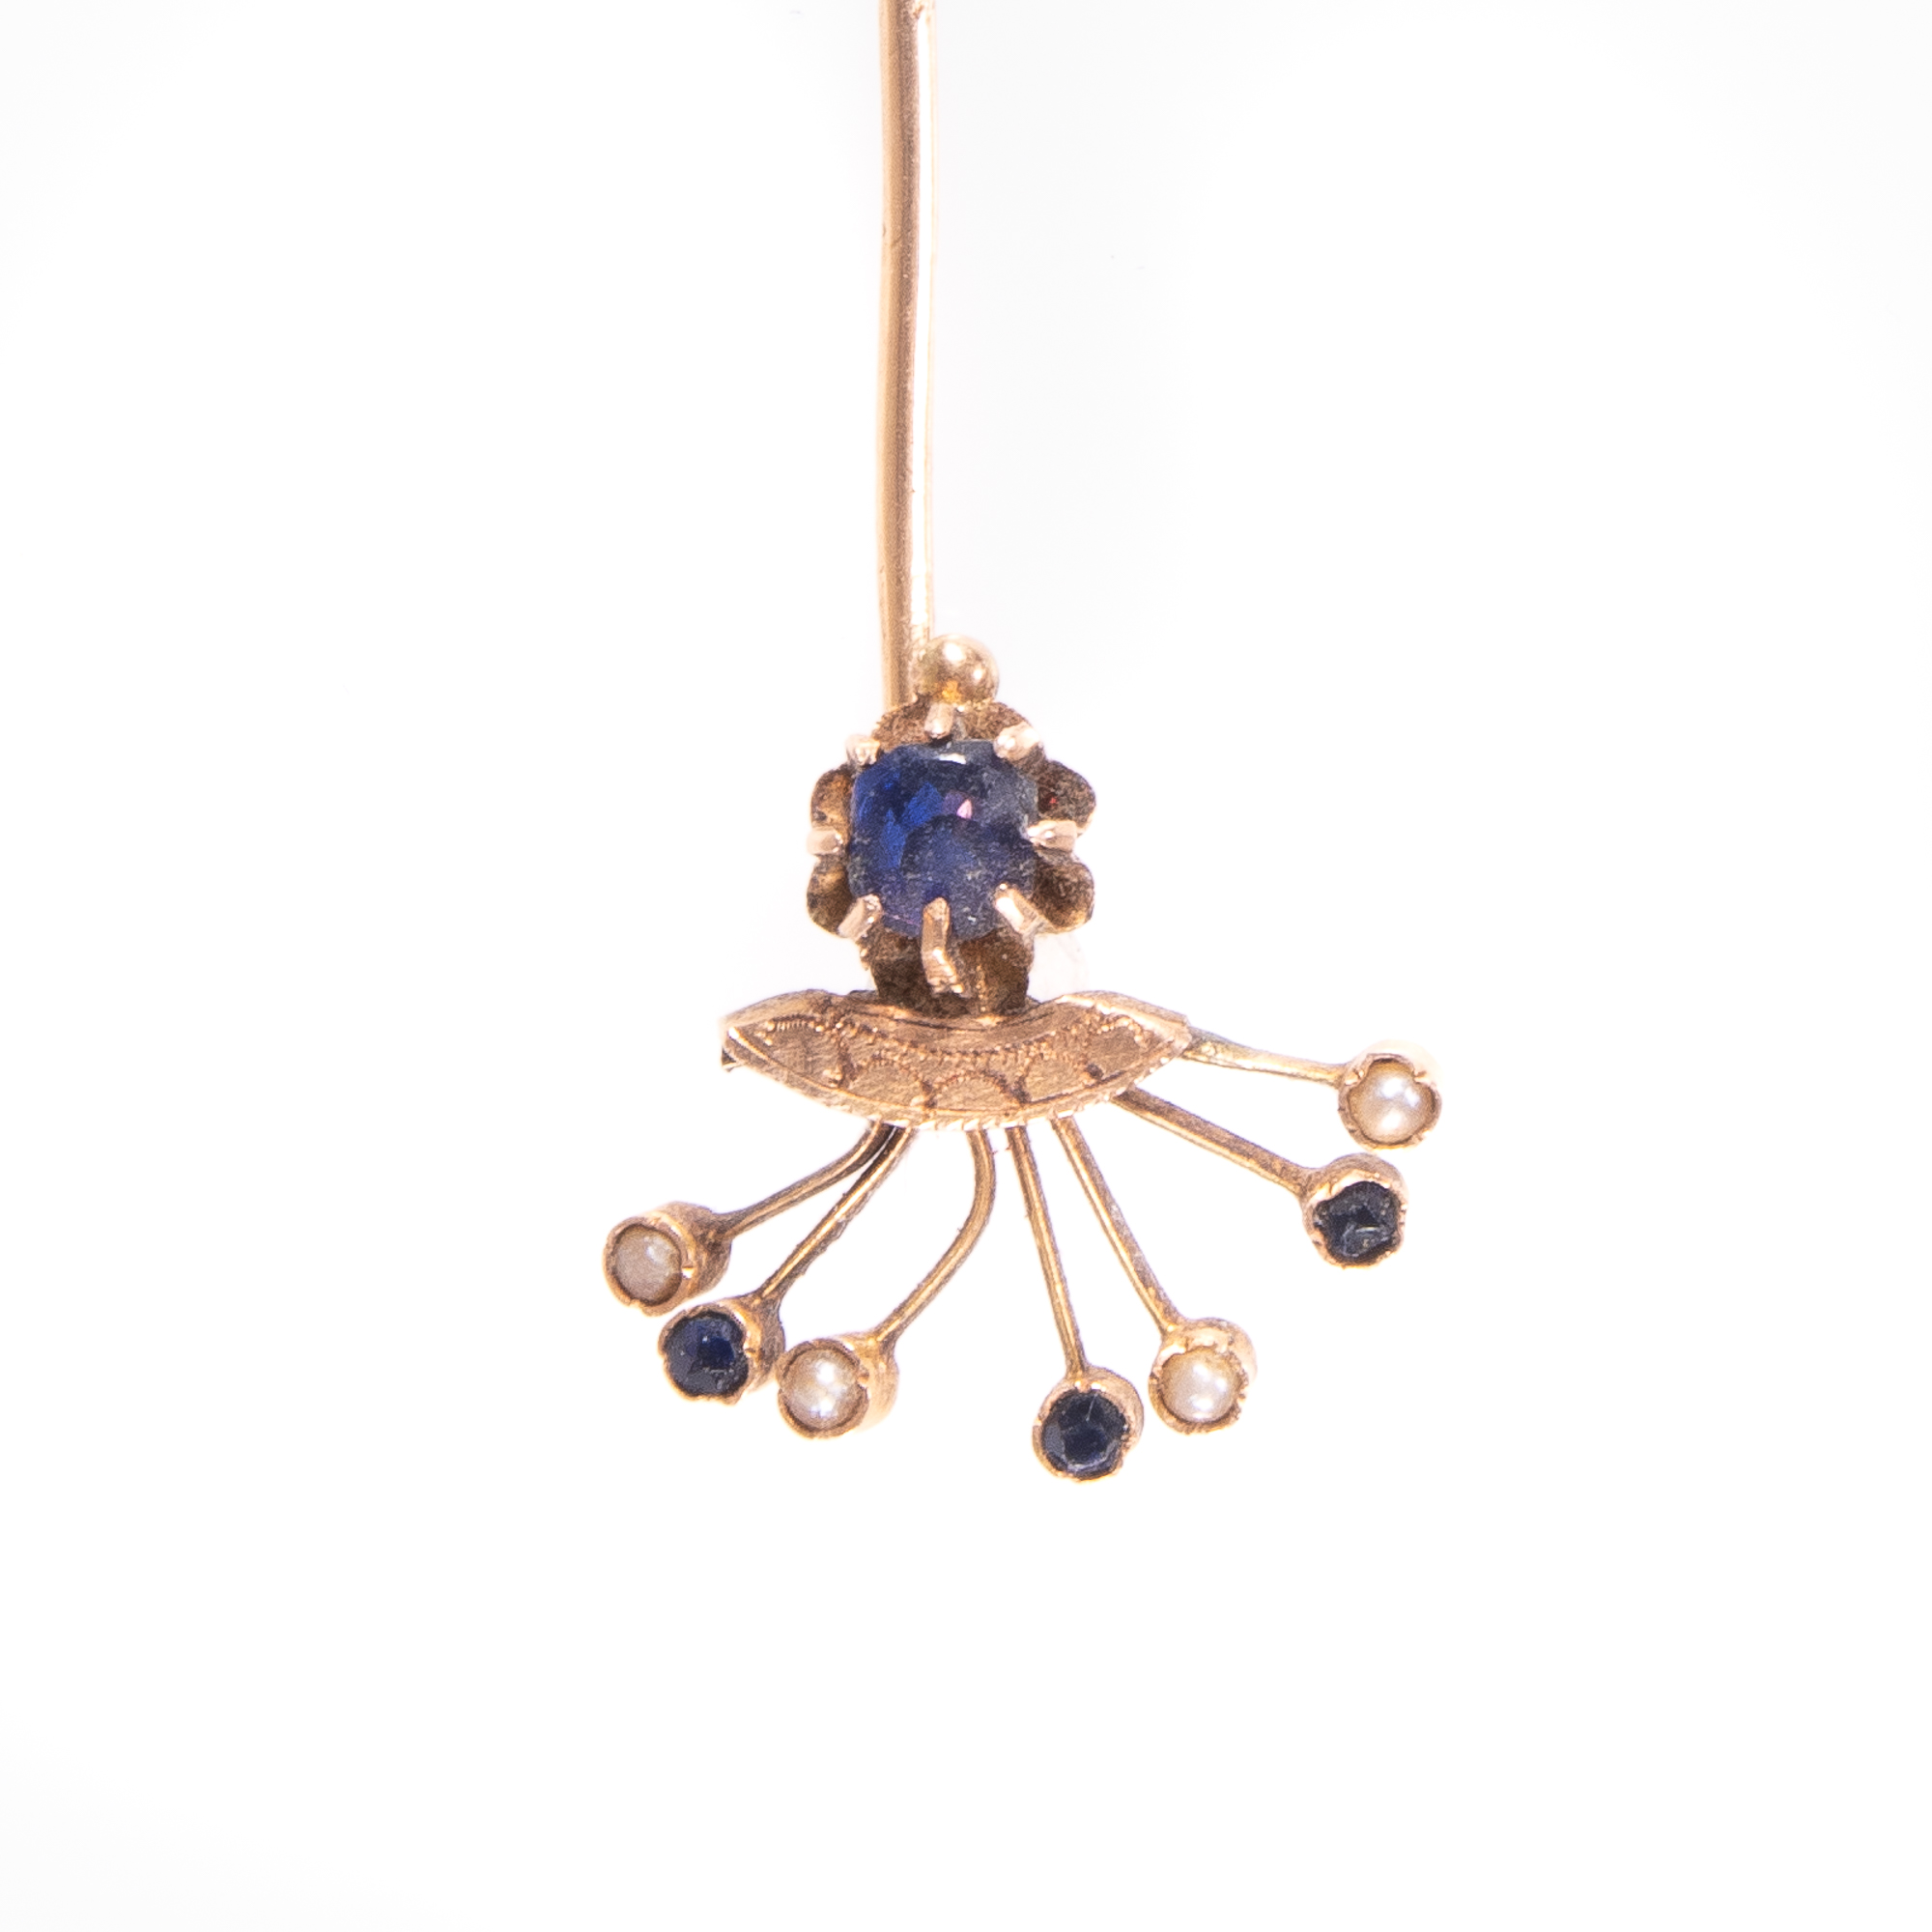 9ct Gold Victorian Sapphire & Pearl Stickpin Brooch - Image 3 of 4